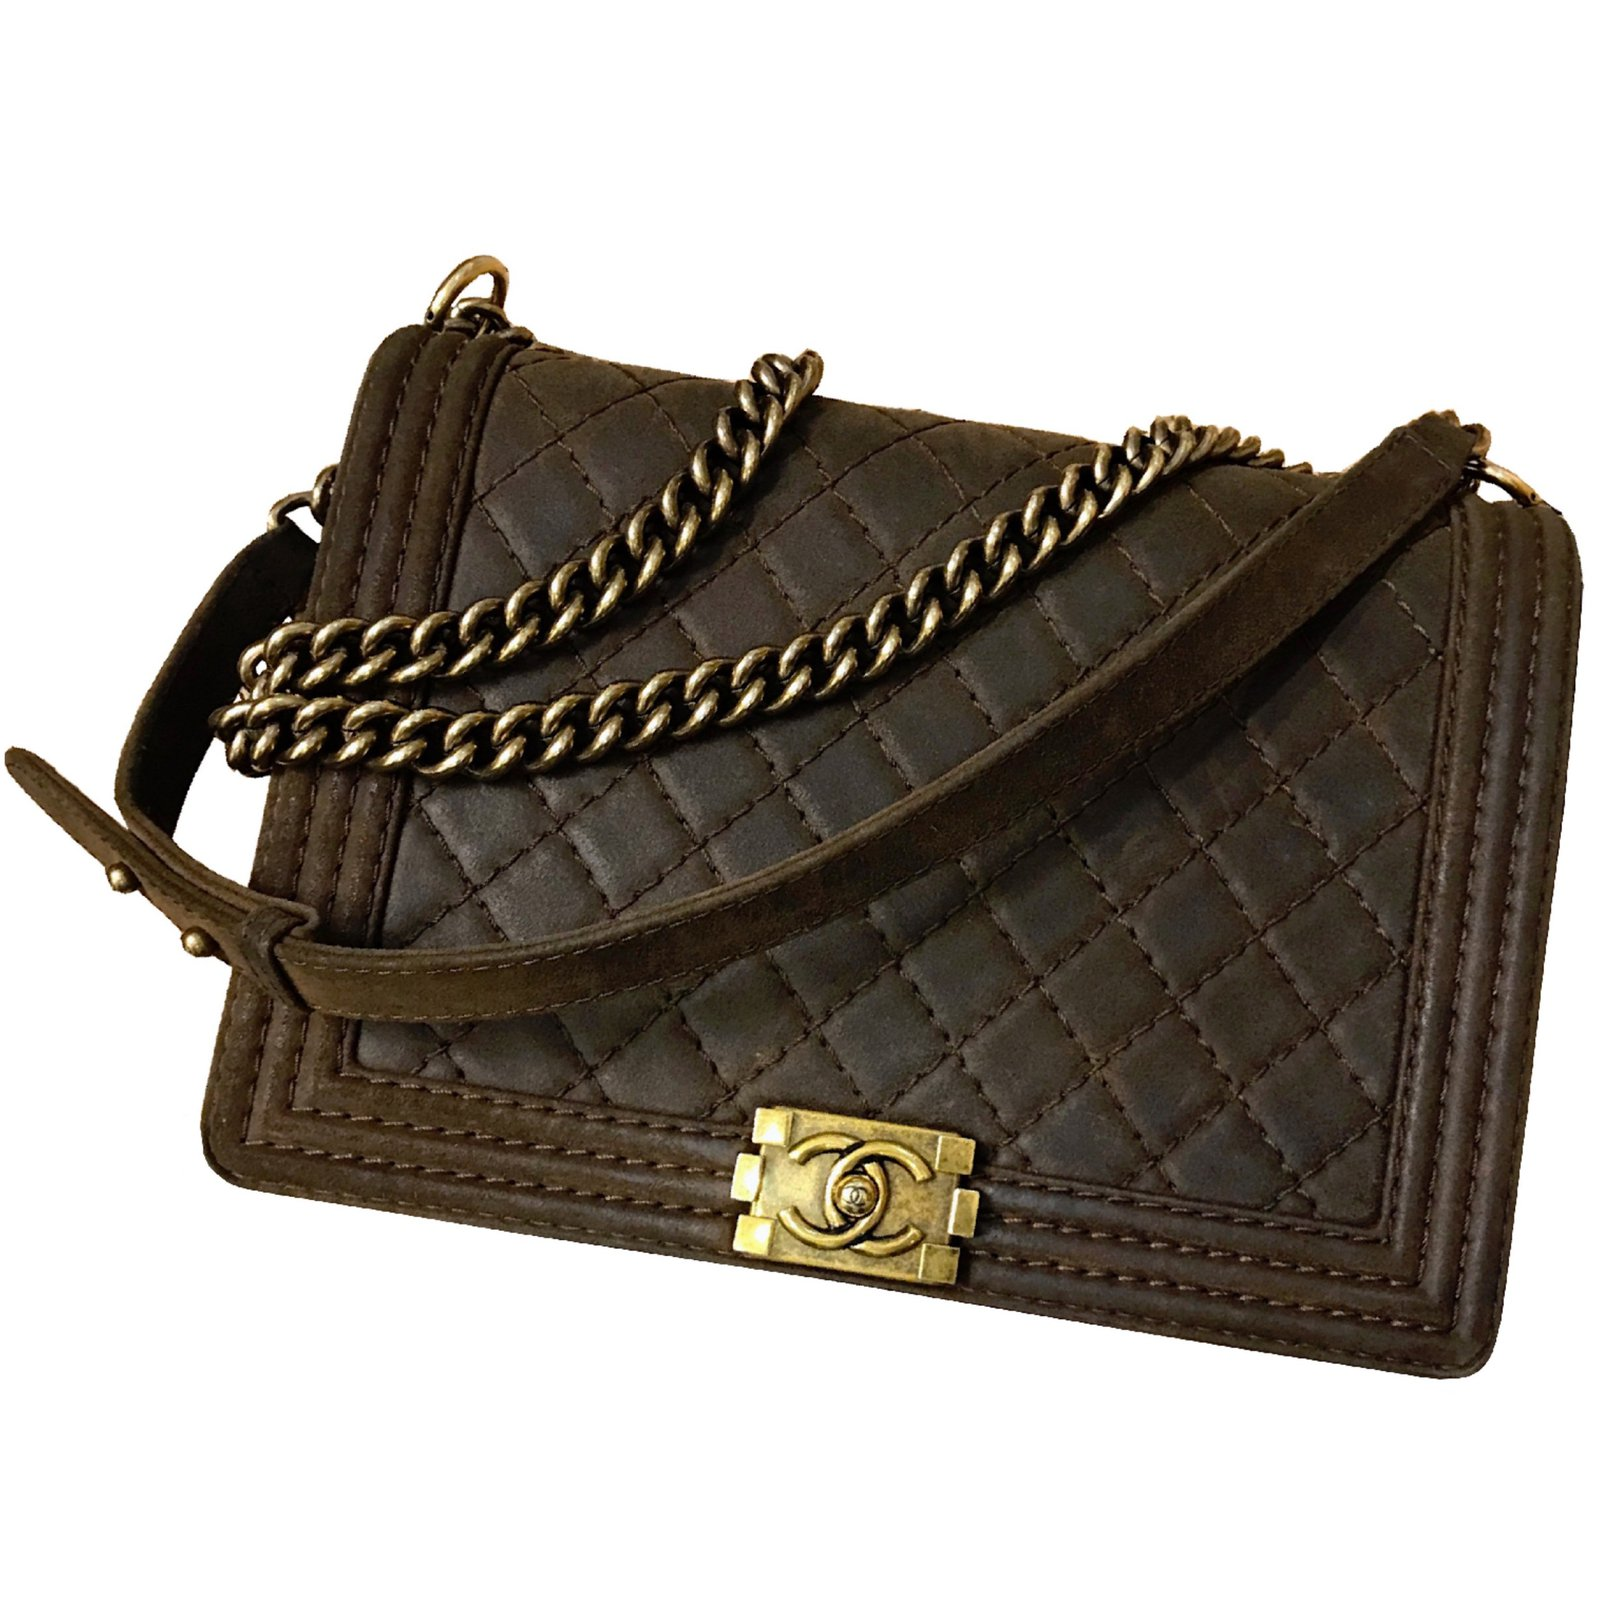 1dc44addf0748e Chanel Handbags Boy Bag   Stanford Center for Opportunity Policy in ...